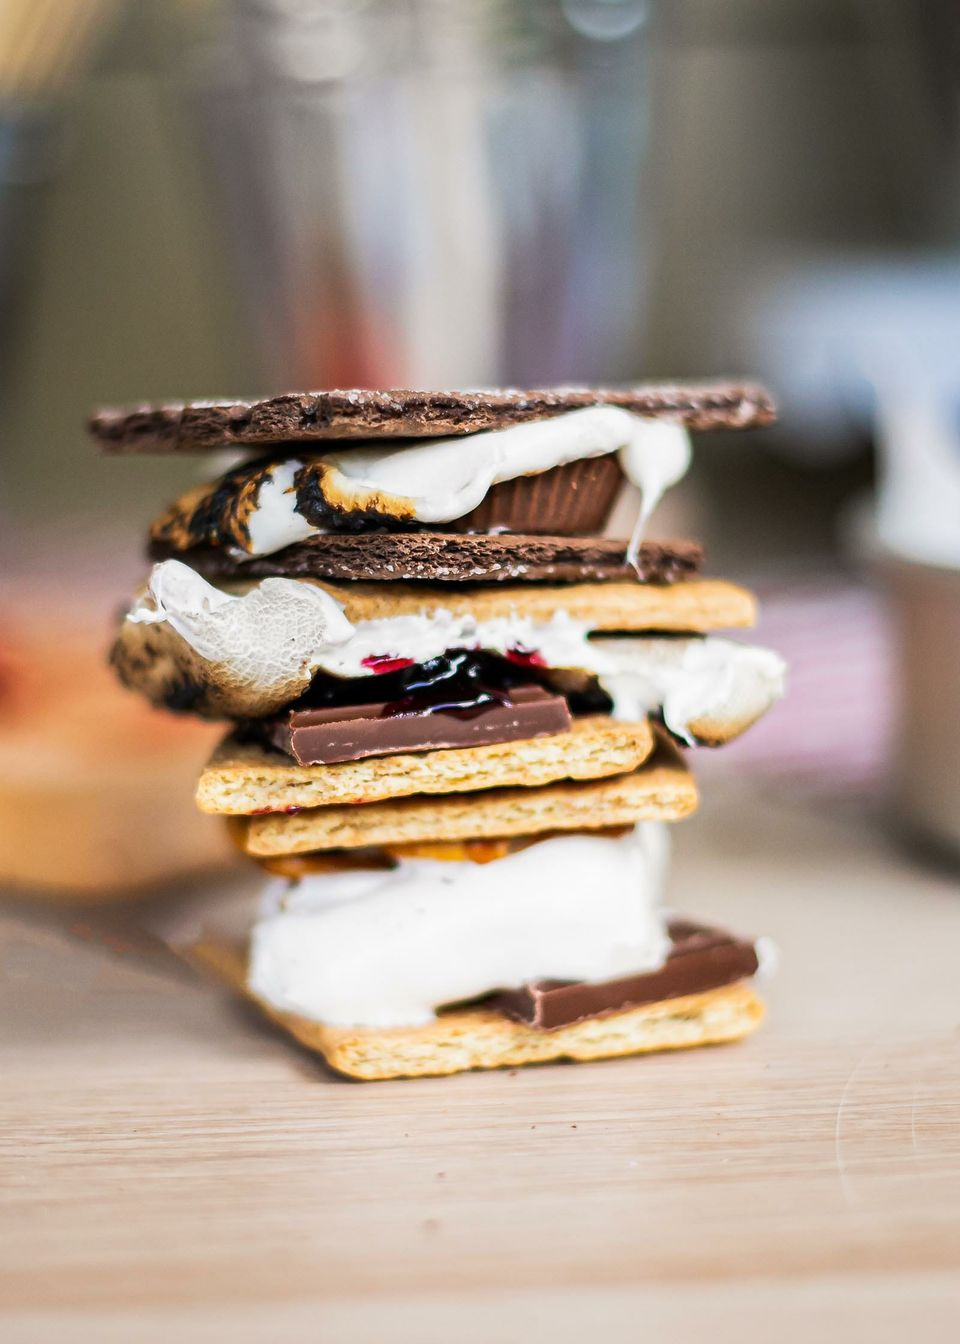 Smores stacked on top of each other for a Backyard Smores Party.